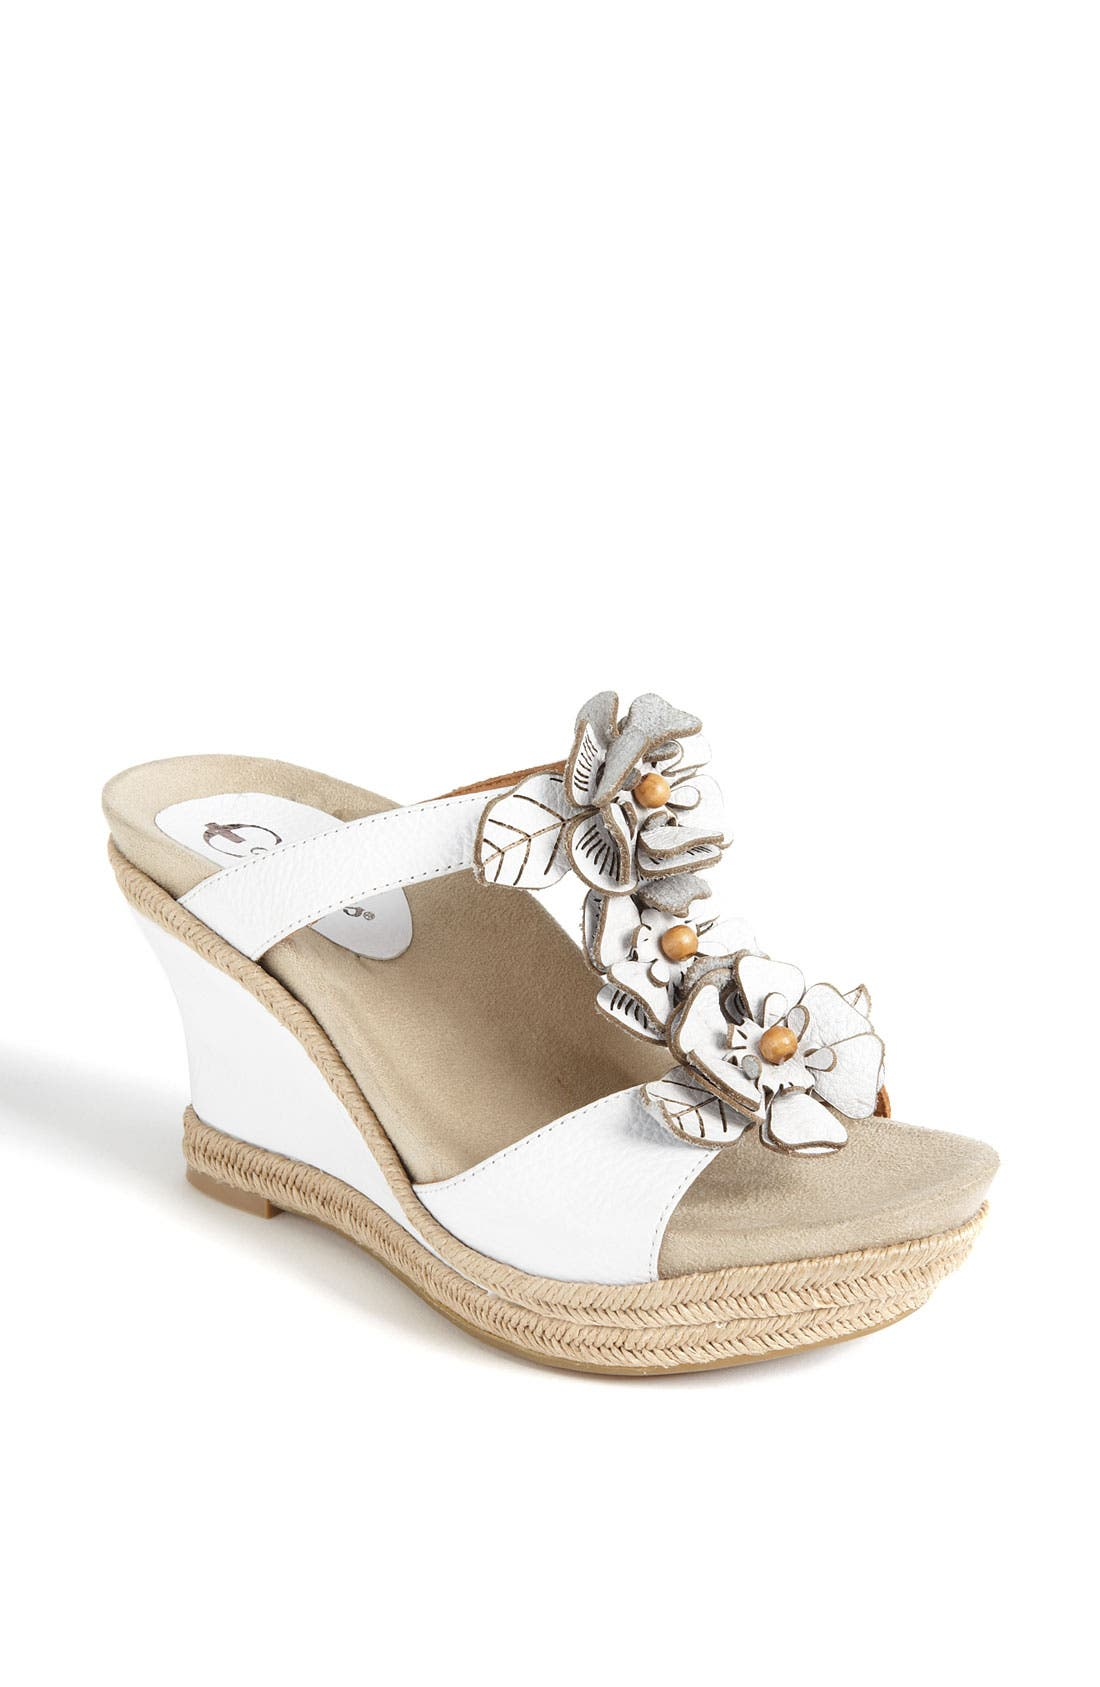 Alternate Image 1 Selected - Earthies® 'Bellini' Wedge Sandal (Exclusive)